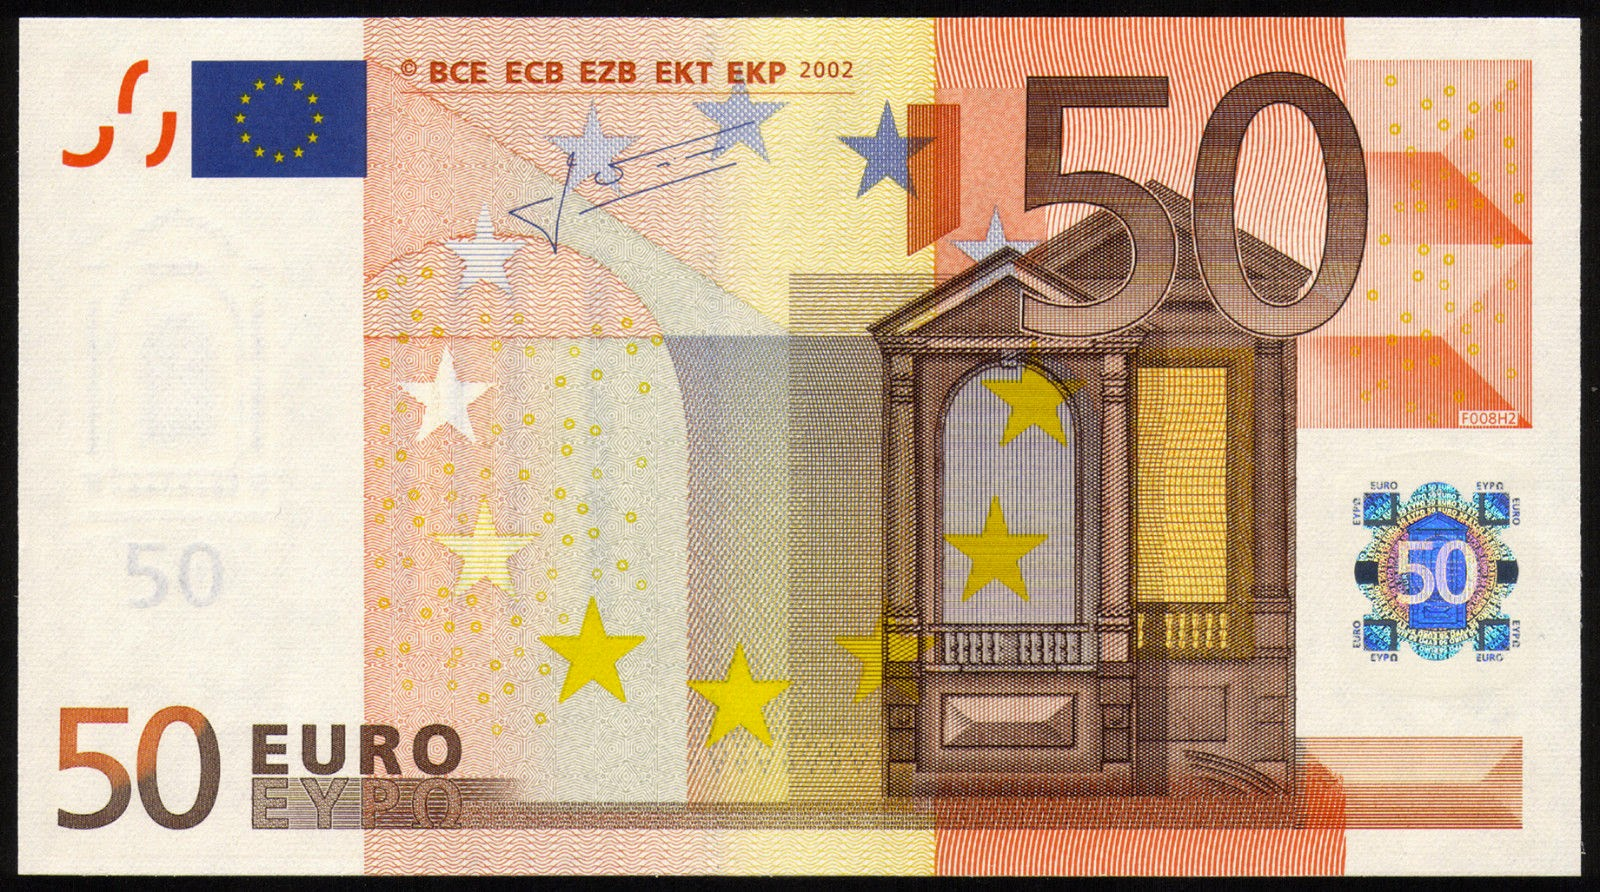 Currency of the Eurozone 50 euro banknote 2002 European Central Bank